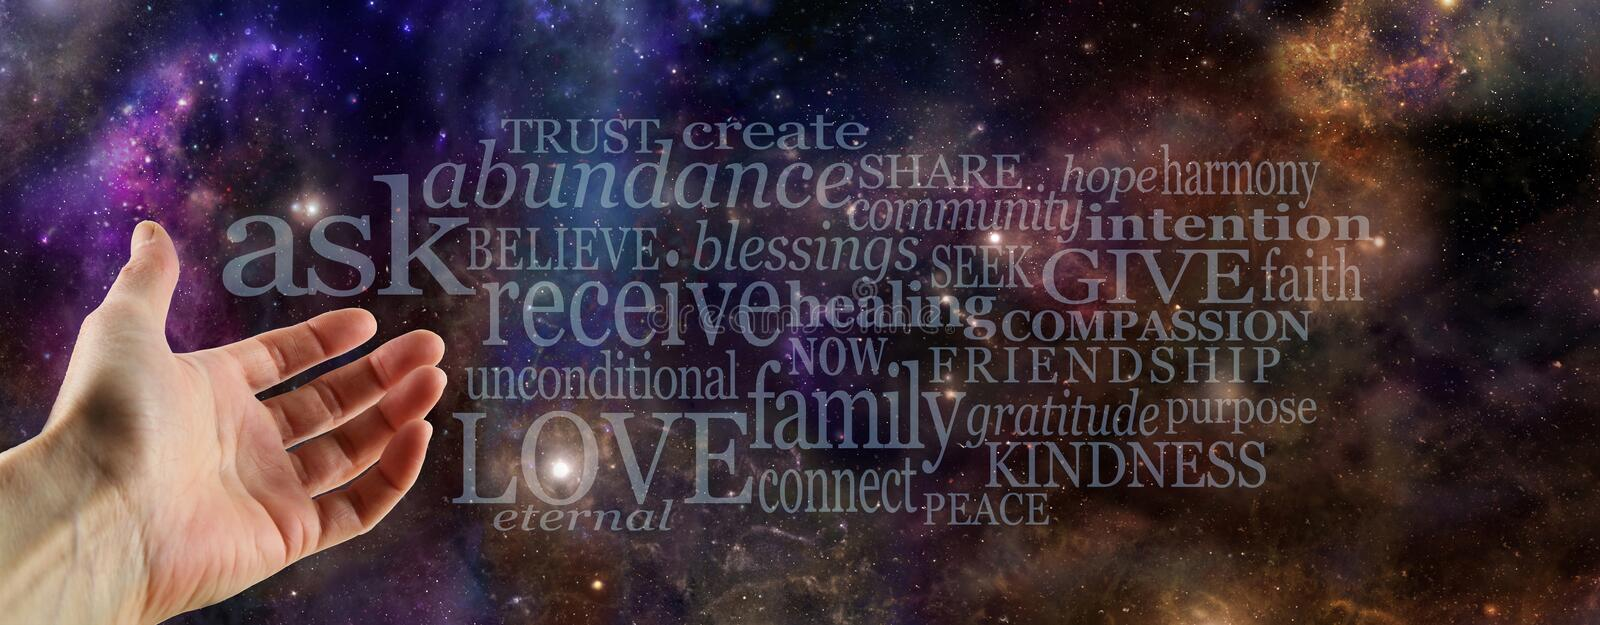 Ask Believe Receive Word Cloud royalty free stock photos